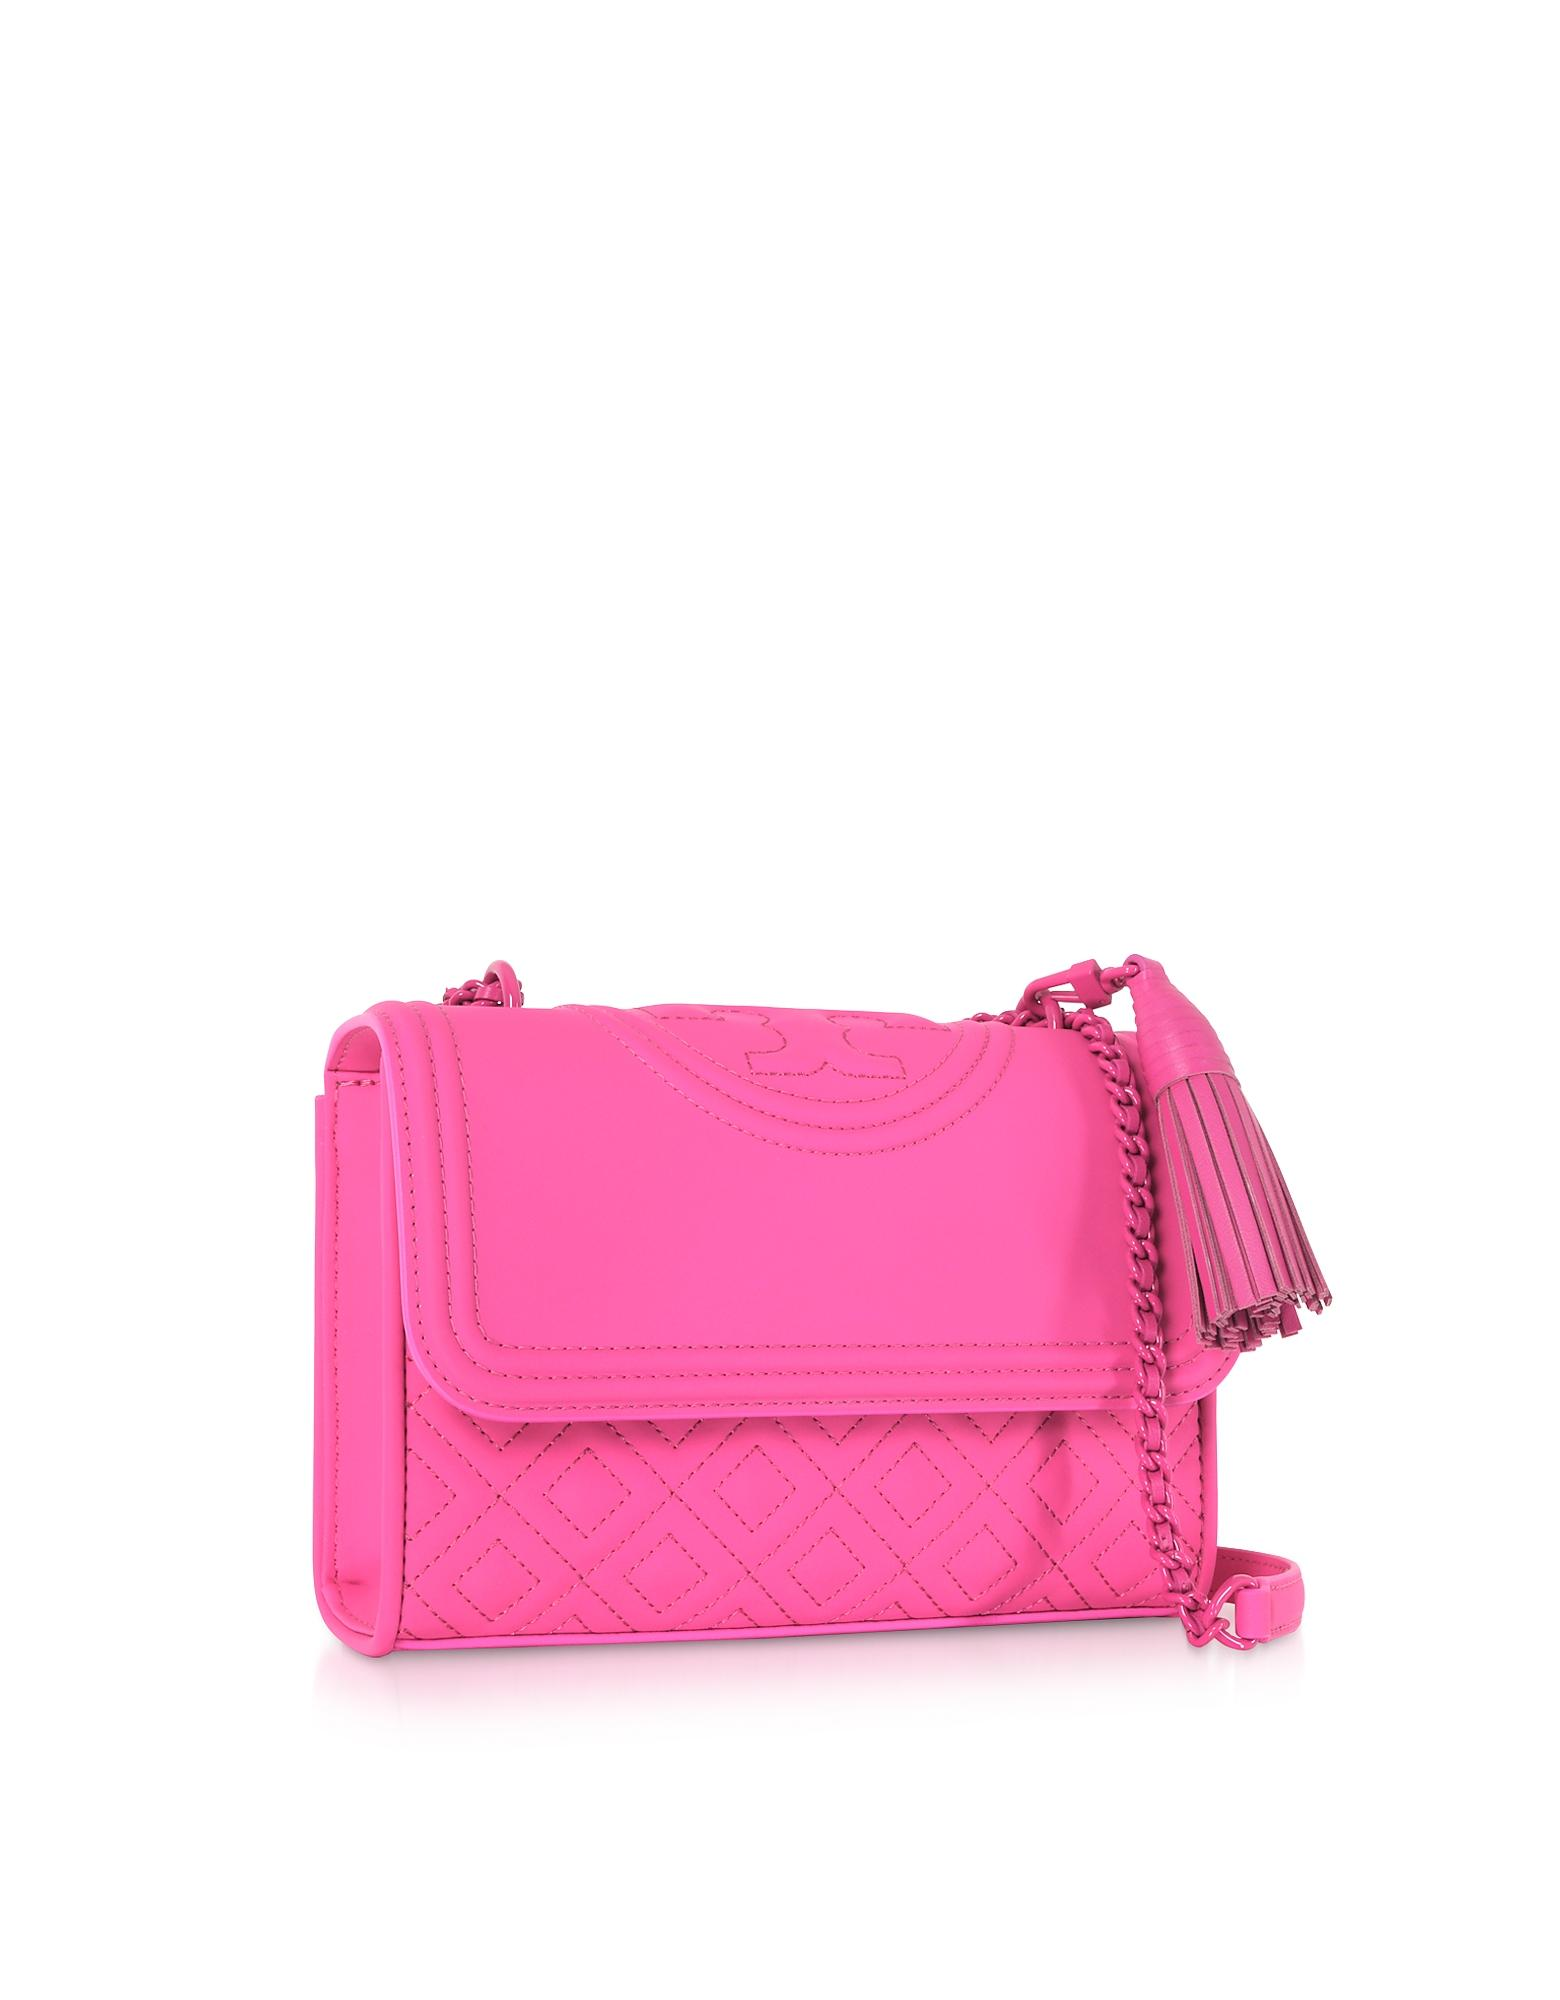 2ab409adc0f6 Tory Burch Fleming Small Convertible Shoulder Bag in Pink - Lyst